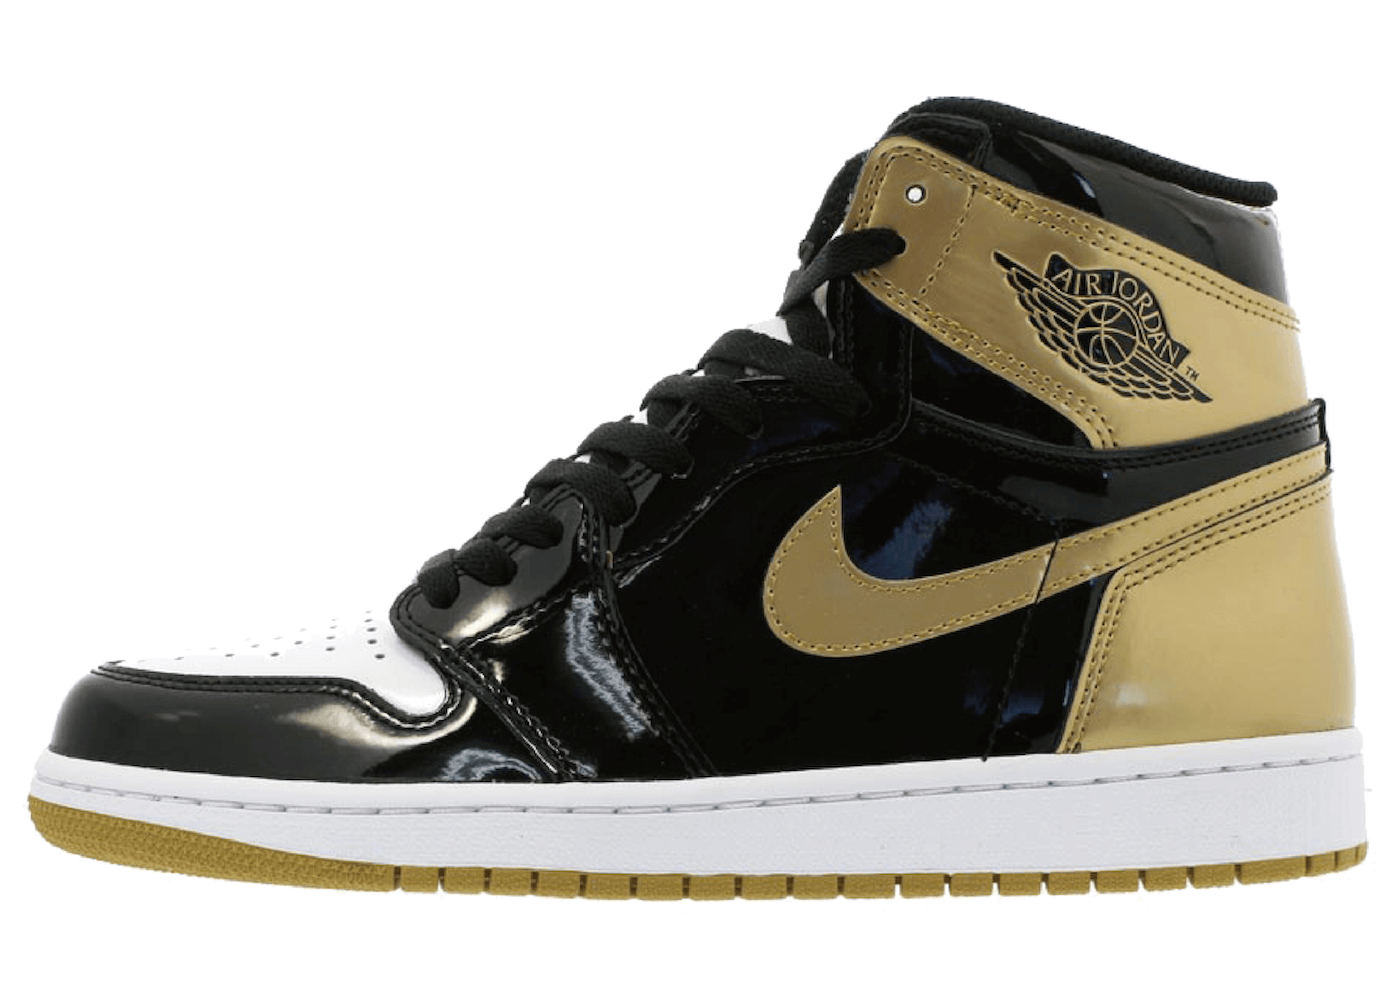 Nike Air Jordan 1 Retro High Gold Top 3 (2017)の写真